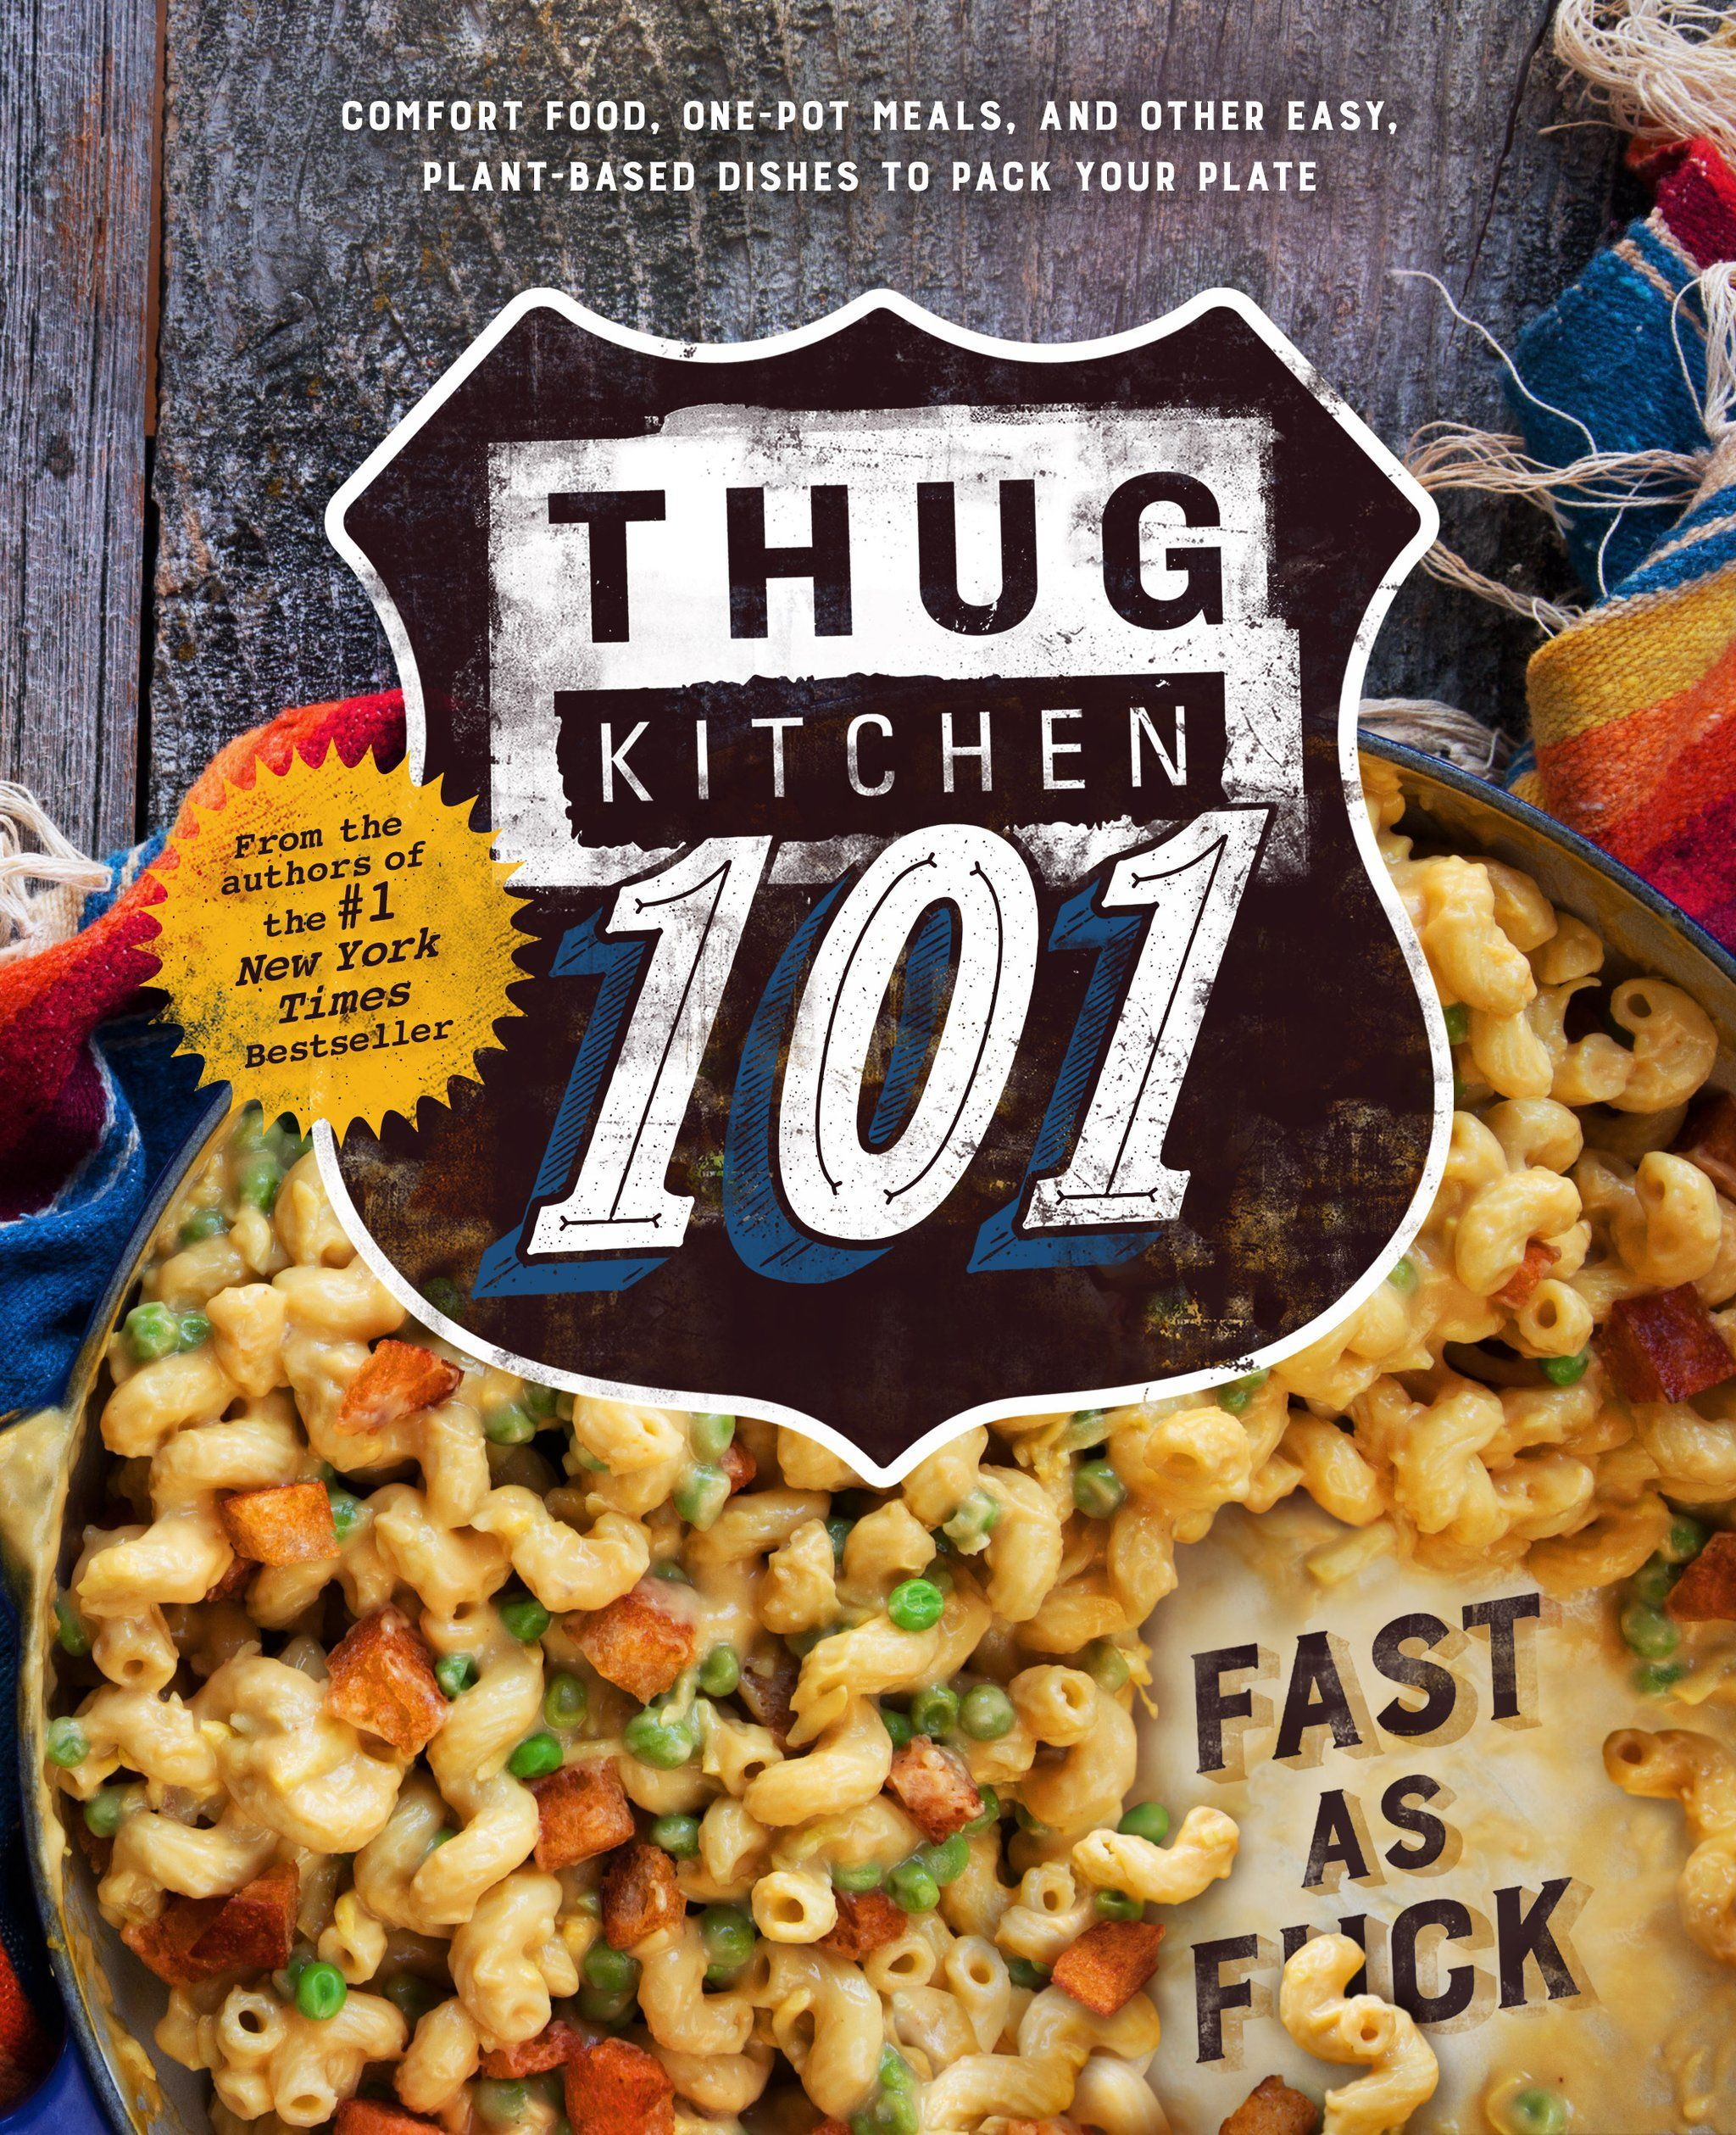 Thug Kitchen Promises Its One Pot Indian Dish Is Fast As F